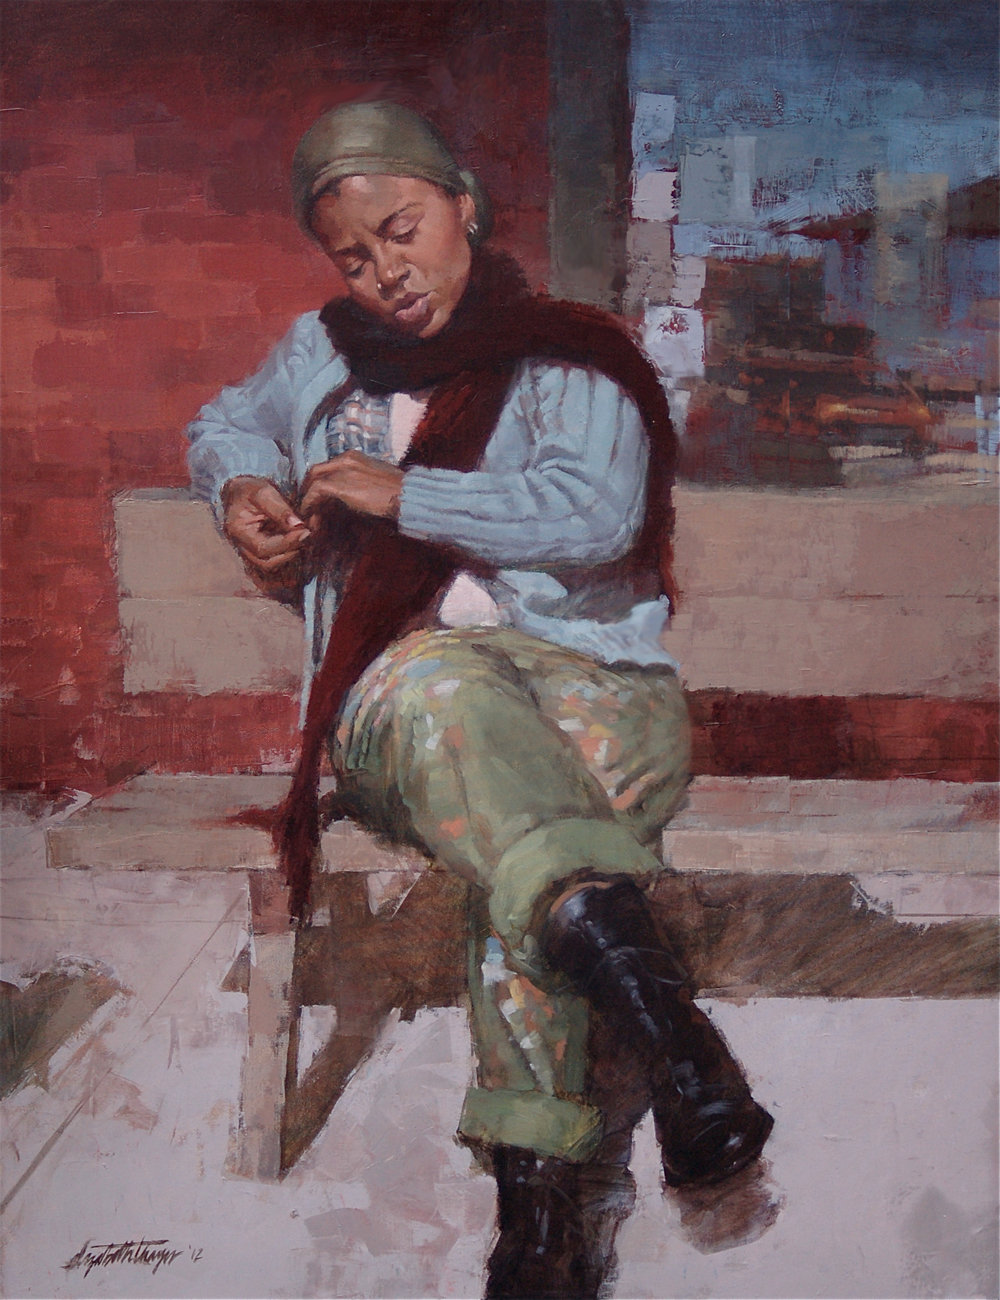 Marcia (2013) by Elizabeth Thayer. 24 x 31 in. Oil on Linen.